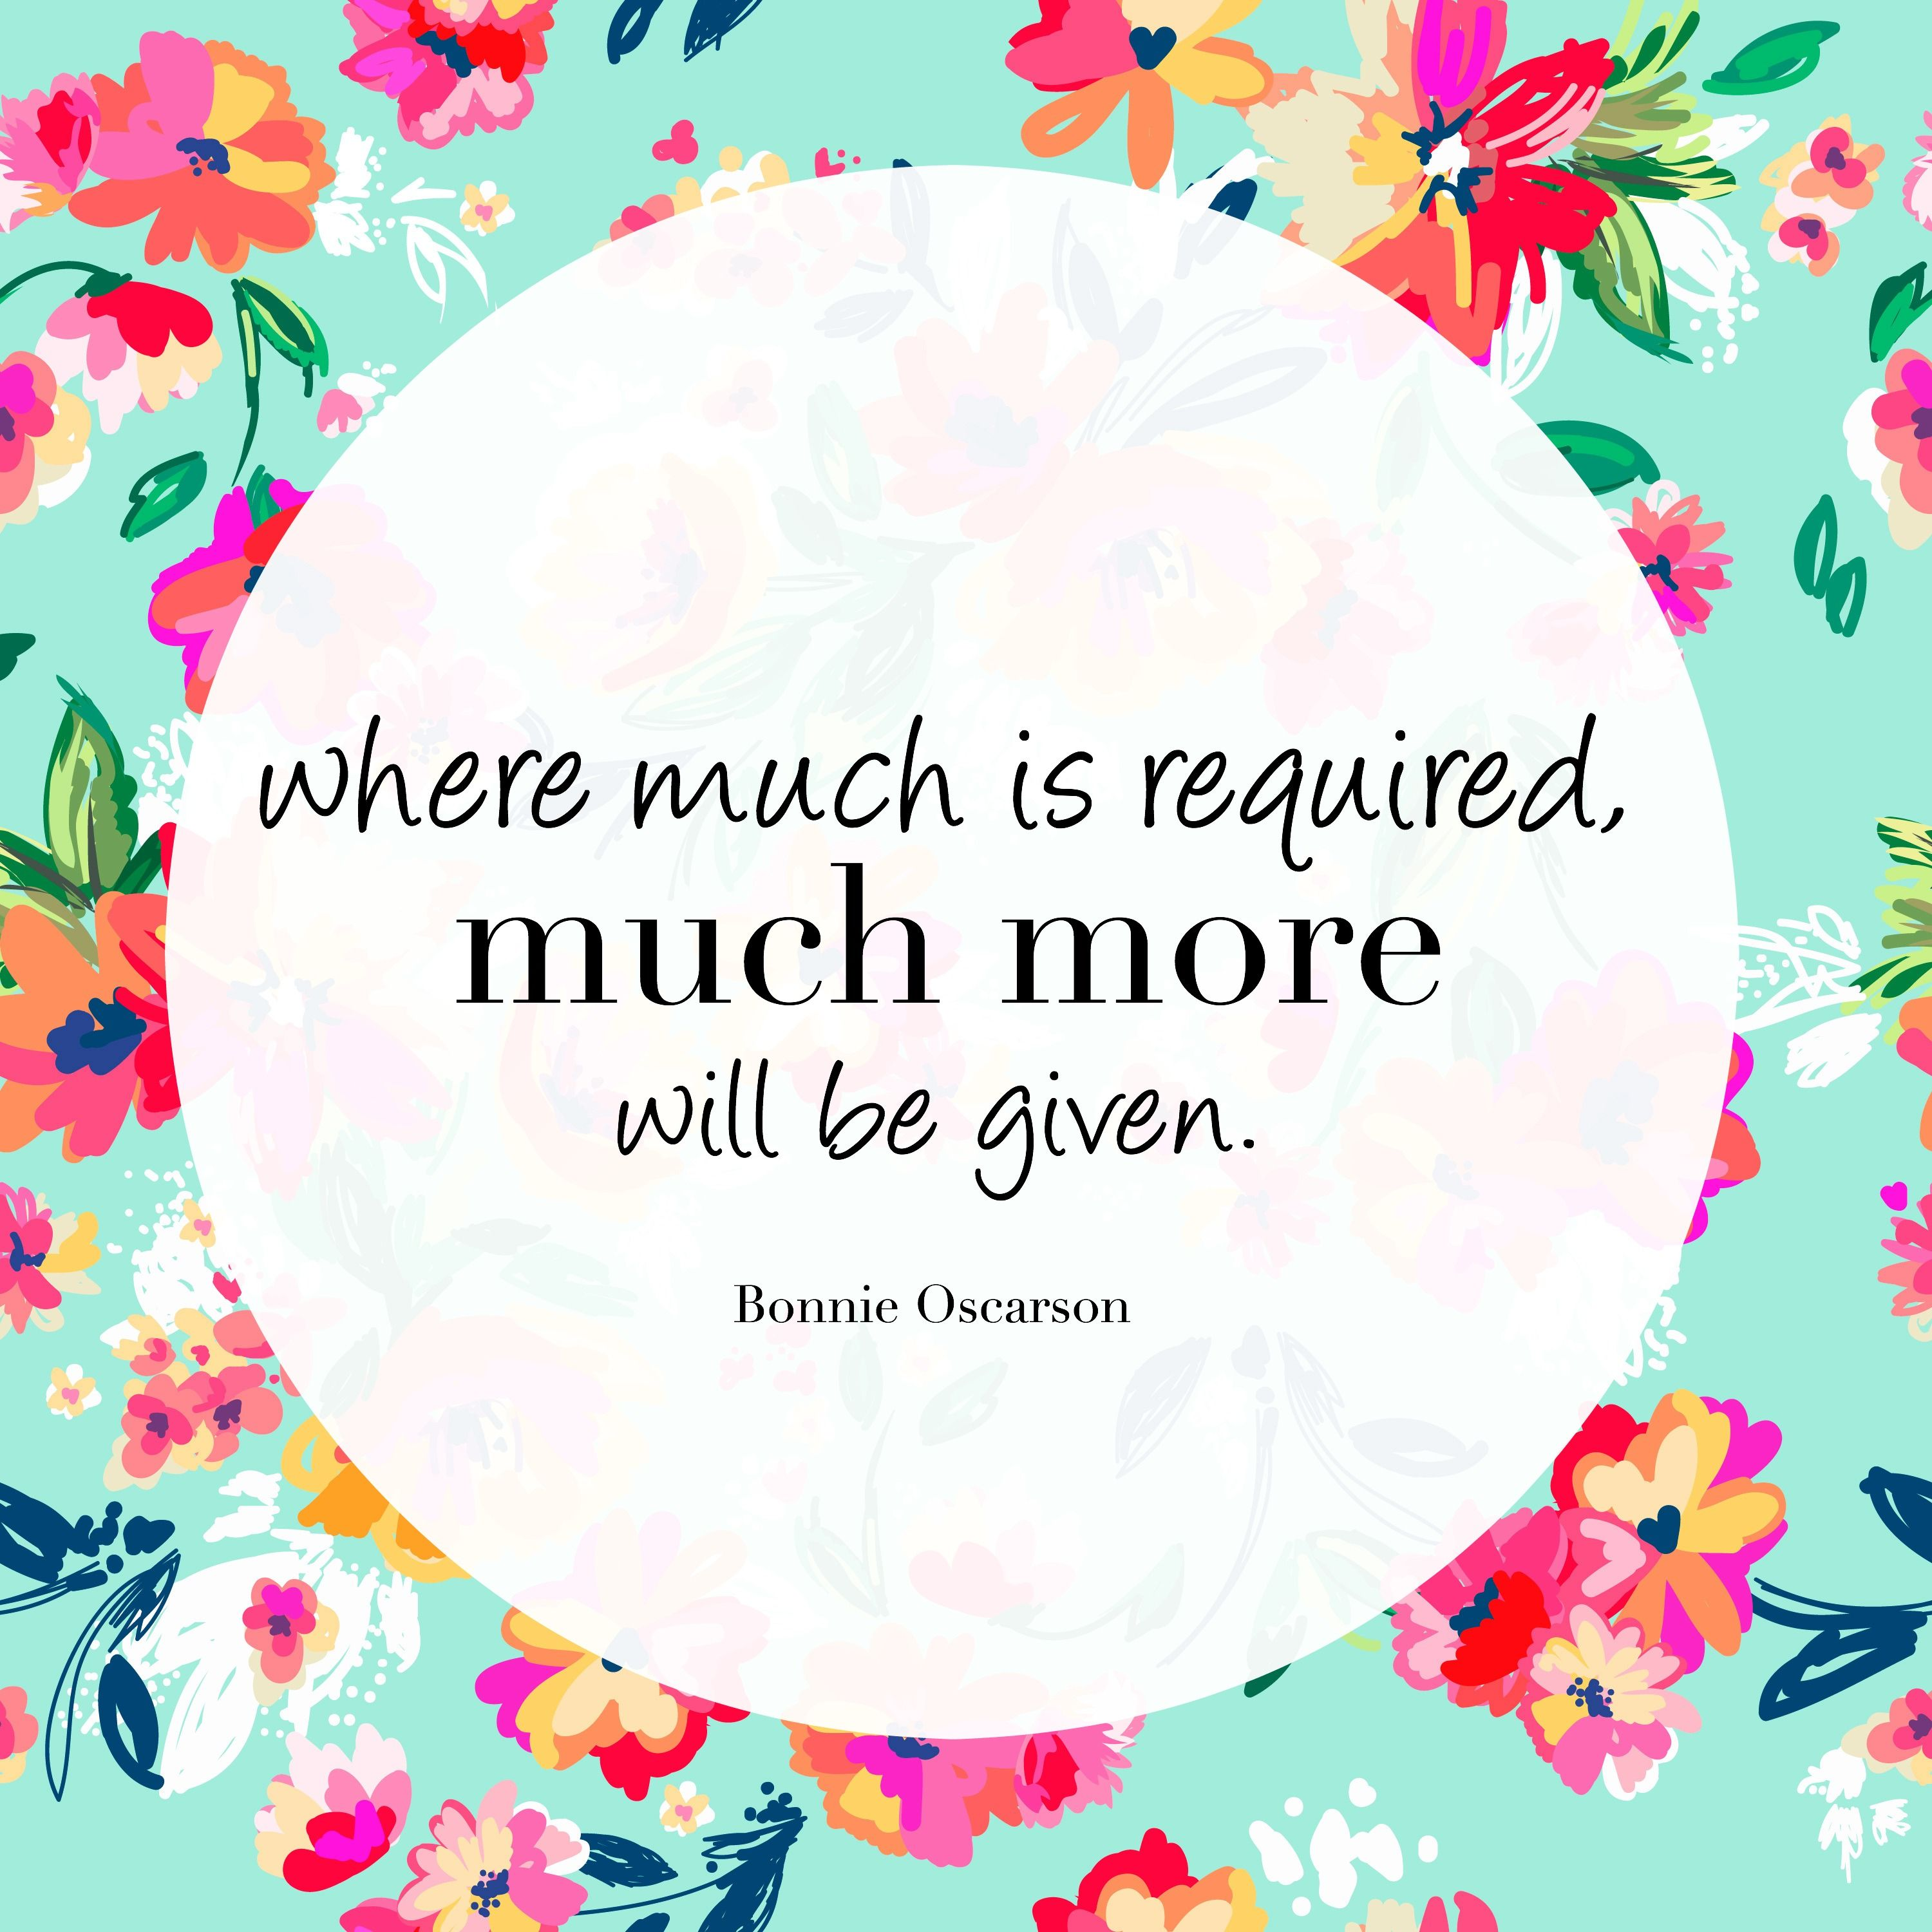 Lds missionary quotes or thoughts quotesgram - Sister Oscarson Where Much Is Required Much More Will Be Given Lds Quotesquotes